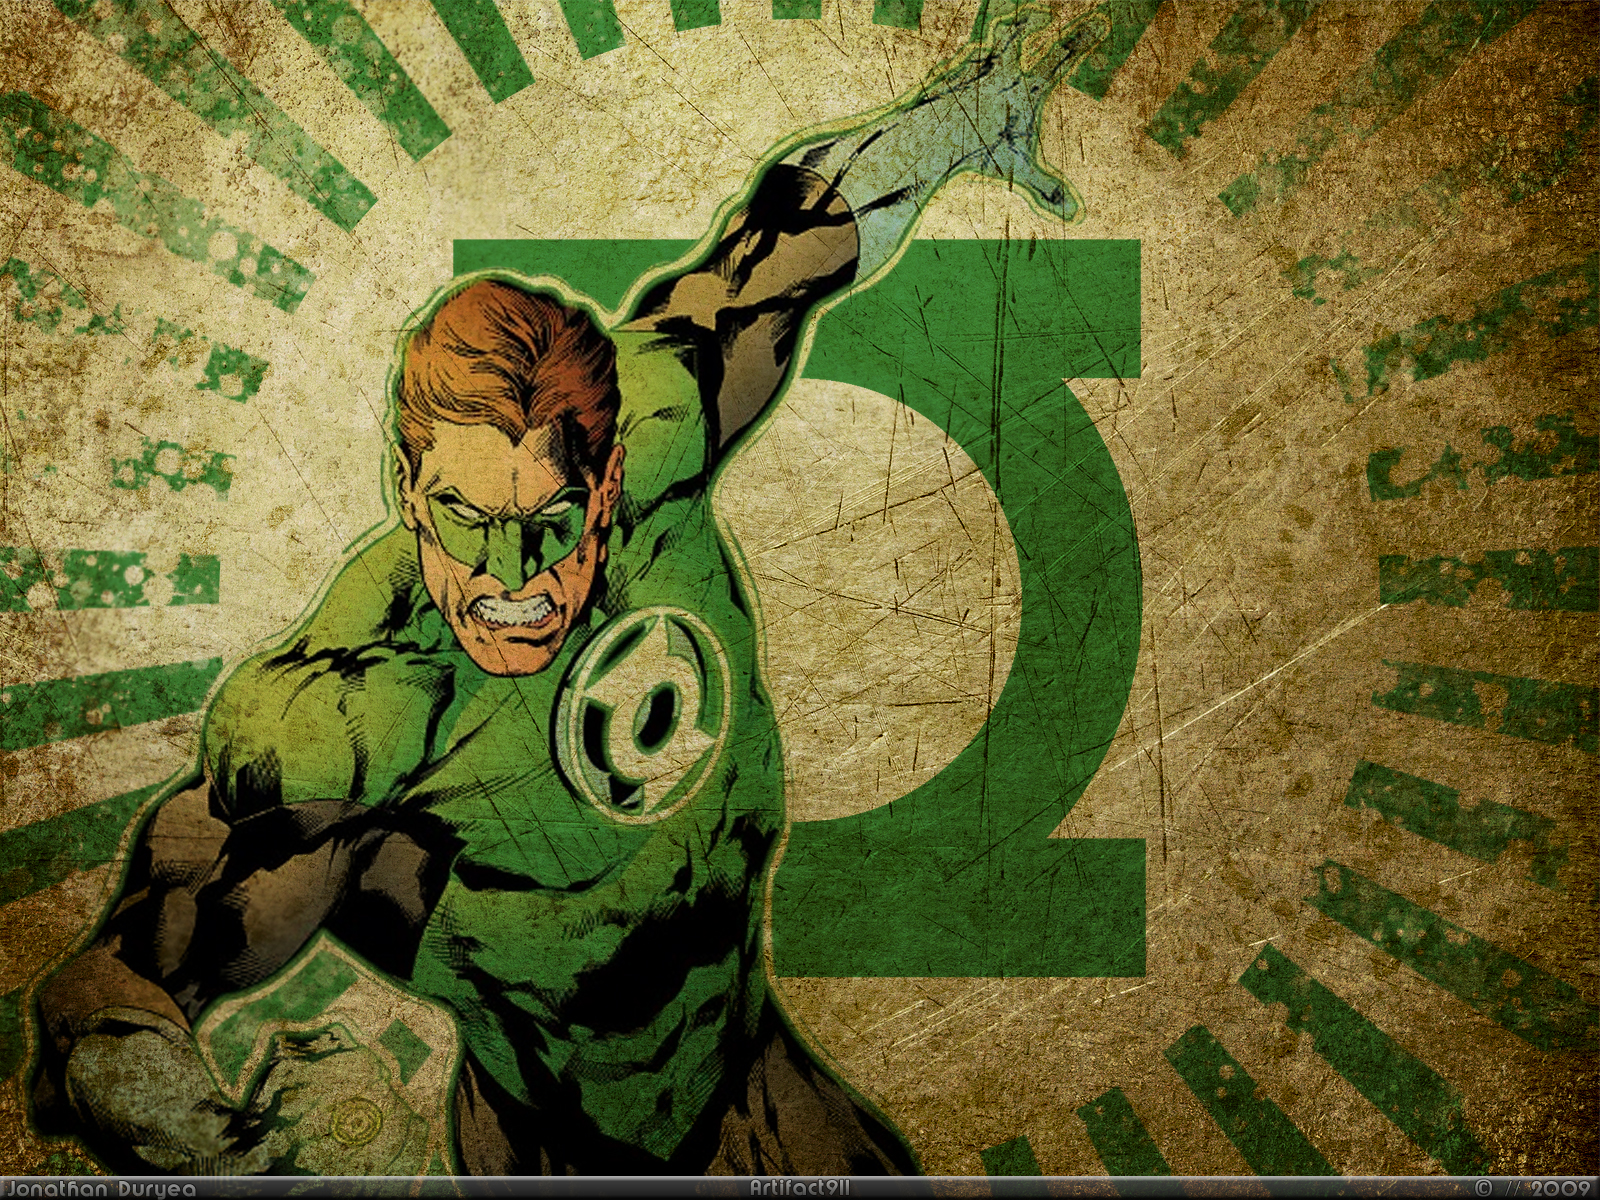 Green Lantern Computer Wallpapers Desktop Backgrounds 1600x1200 1600x1200